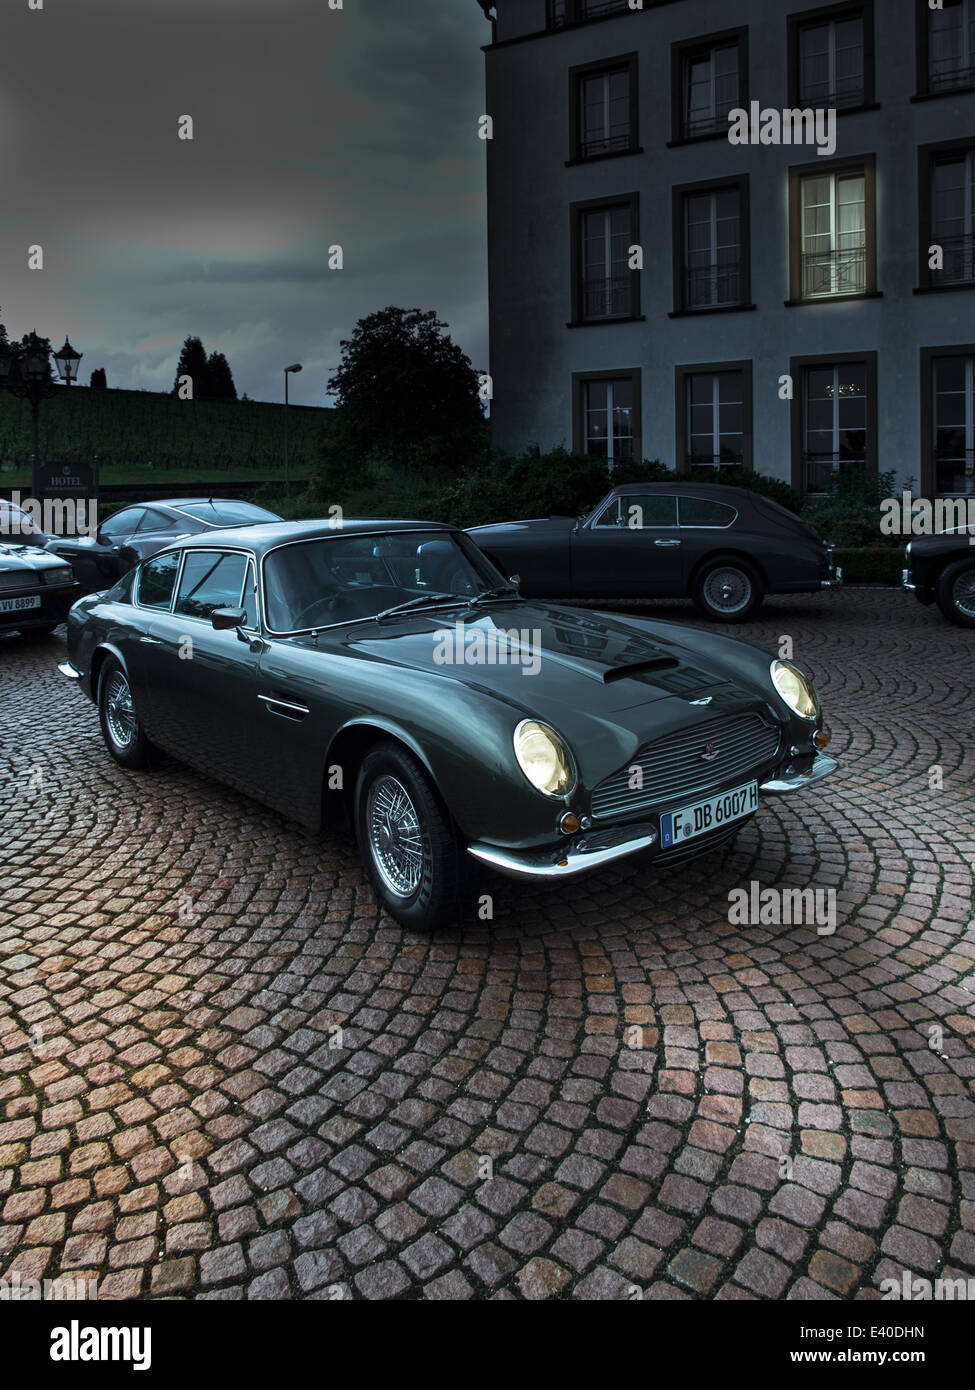 Parking Aston Martin DB 6 with lighted headlights - Stock Image